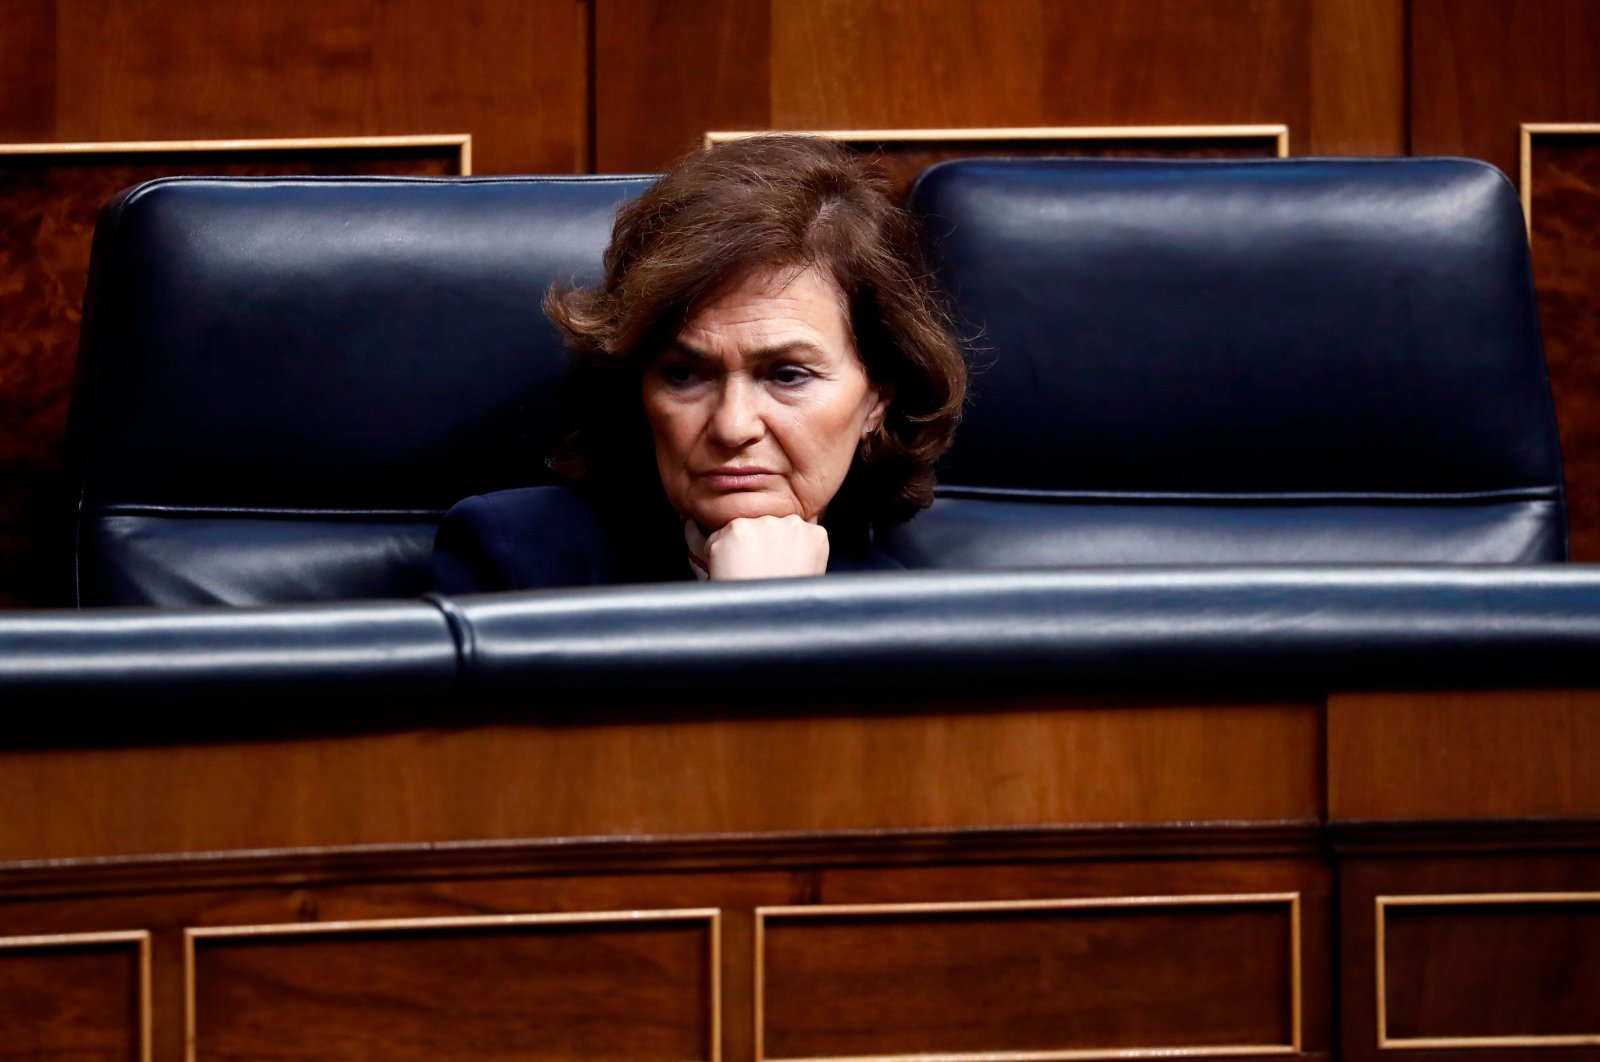 Spain's Deputy Prime Minister Carmen Calvo attends a session at the Spanish Parliament, Madrid, March 18, 2020. (AFP Photo)